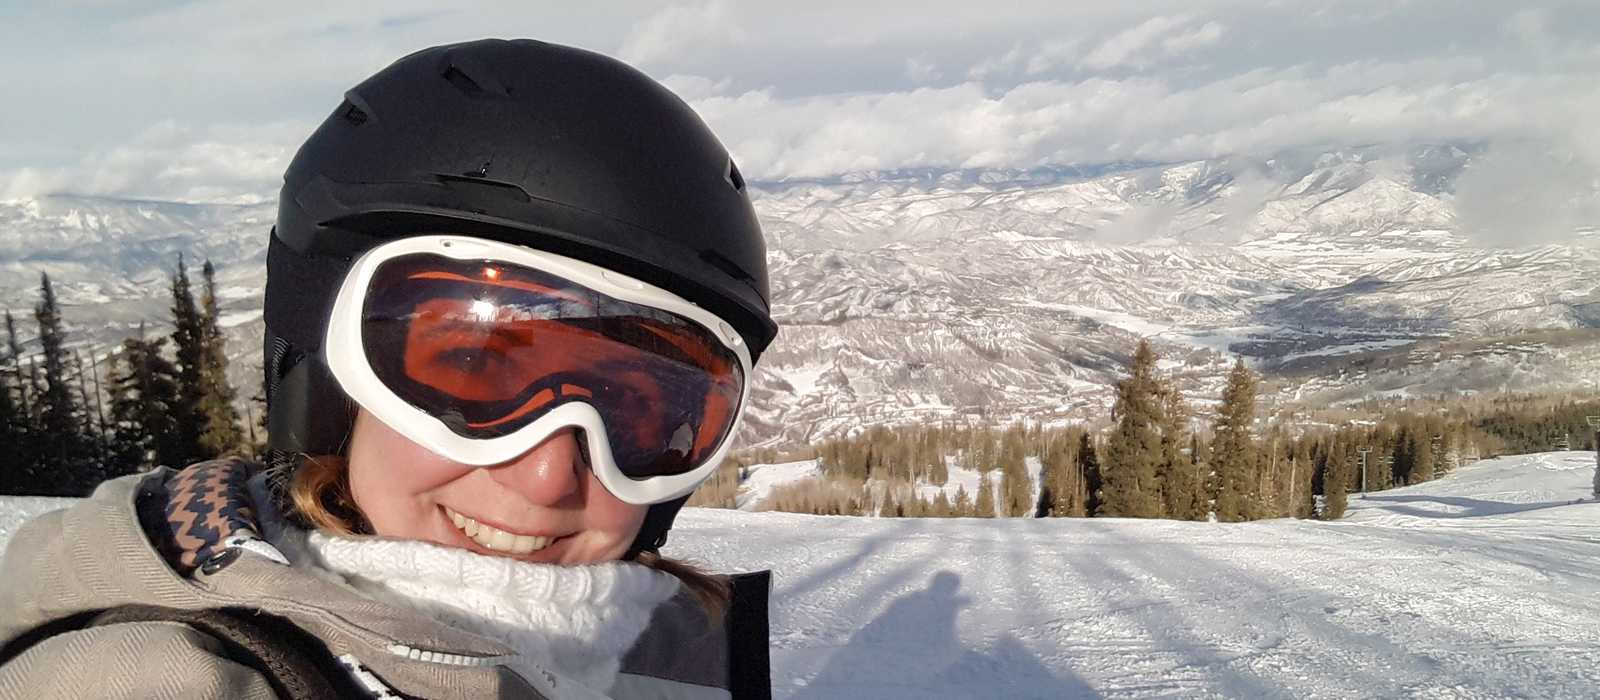 Snowboarding in Snowmass